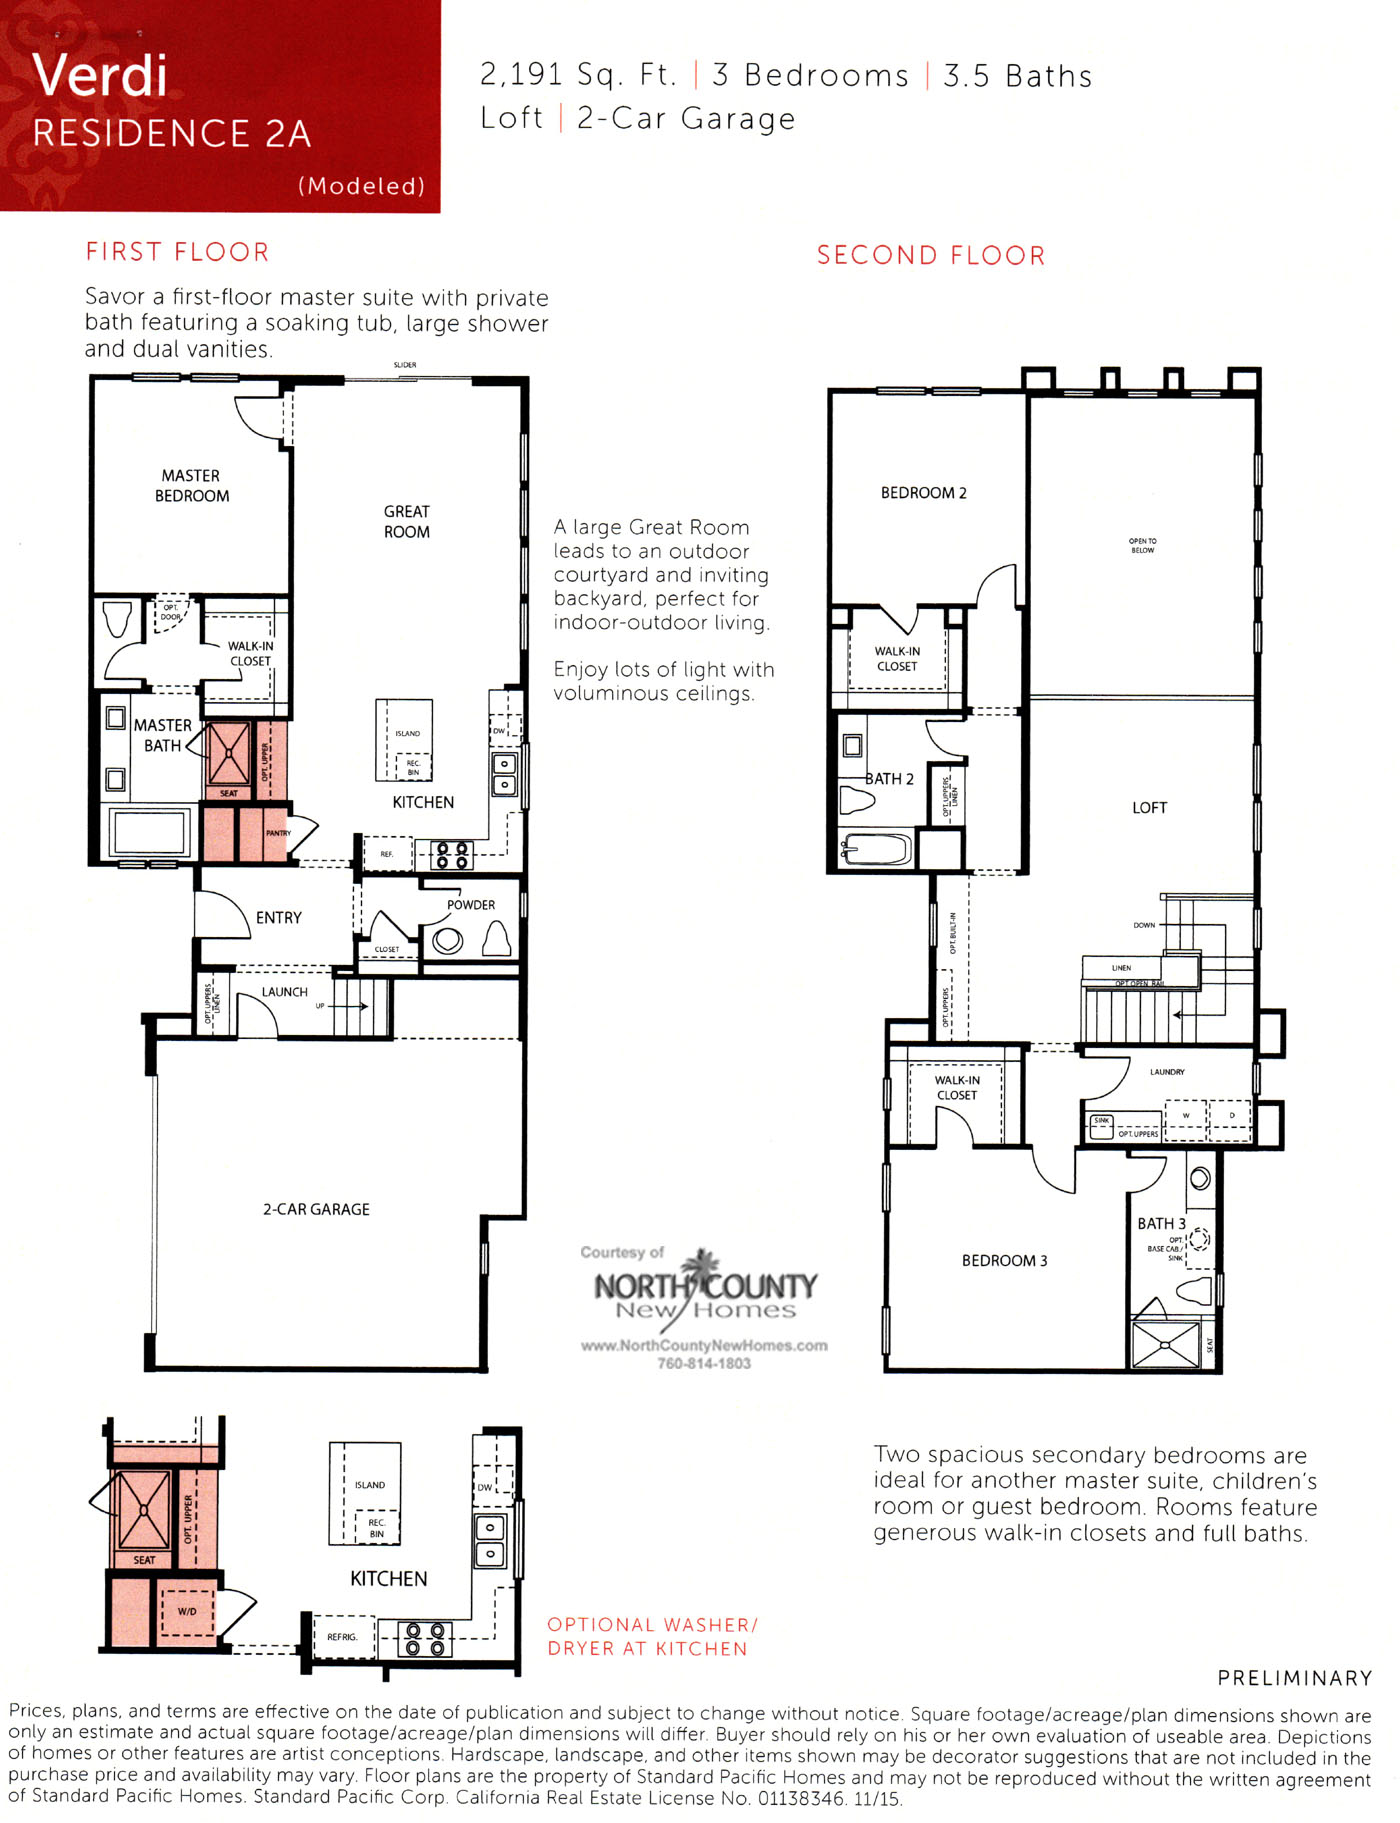 New Townhomes And New Homes In San Diego At Avery Pointe At Veridian. Near  Del. Avery Pointe Floor Plan 2A